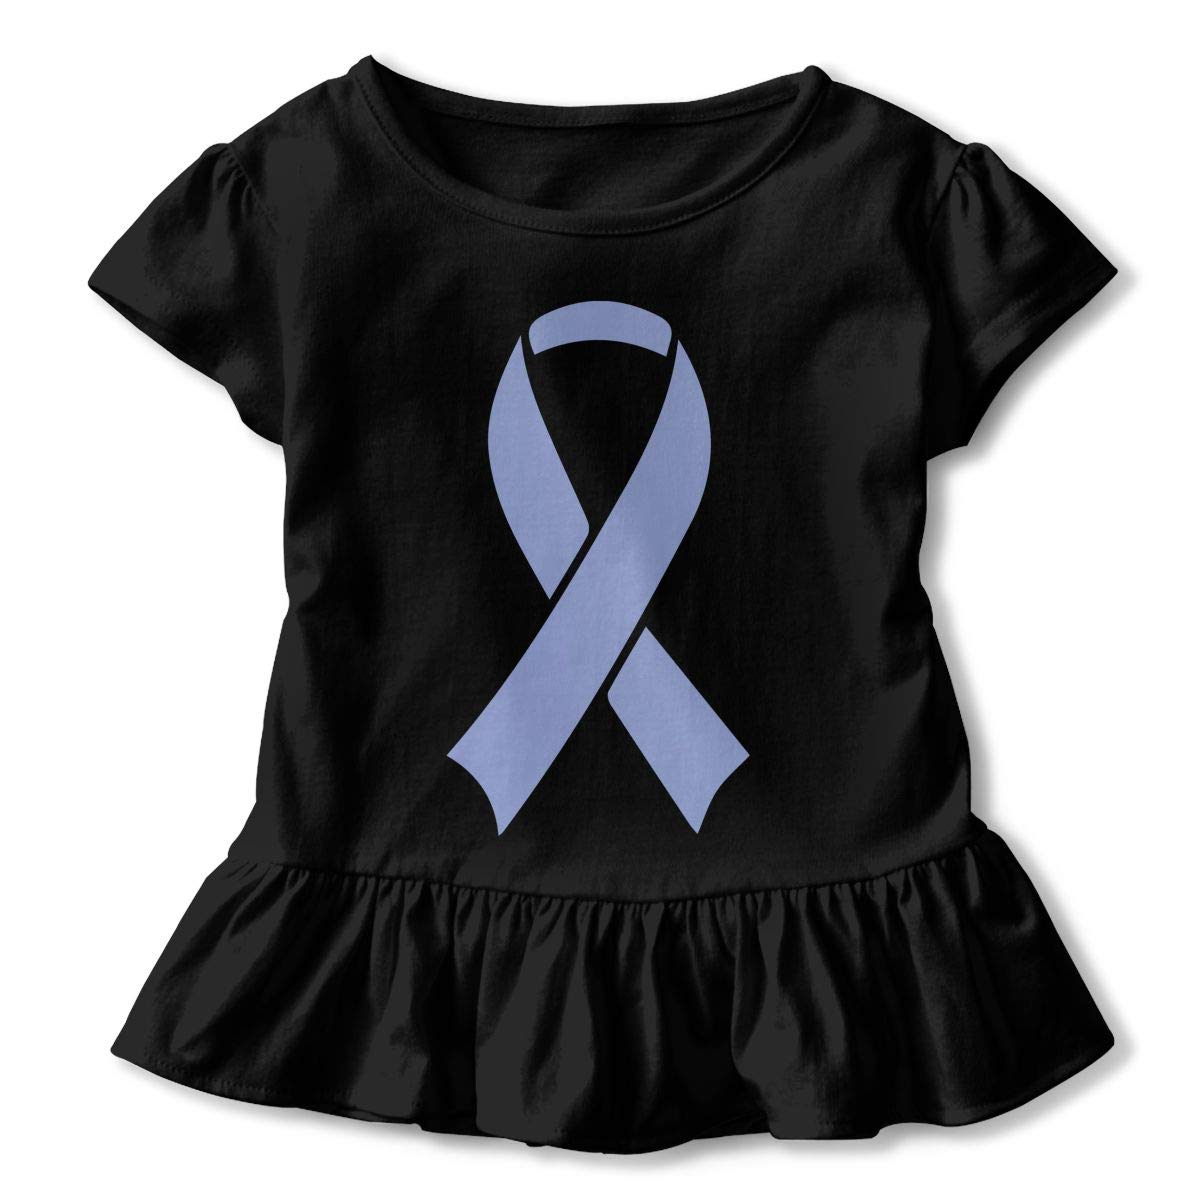 SHIRT1-KIDS I Stand with Israel T-Shirts Toddler//Infant Girls Short Sleeve Ruffles Shirt Tee for 2-6T